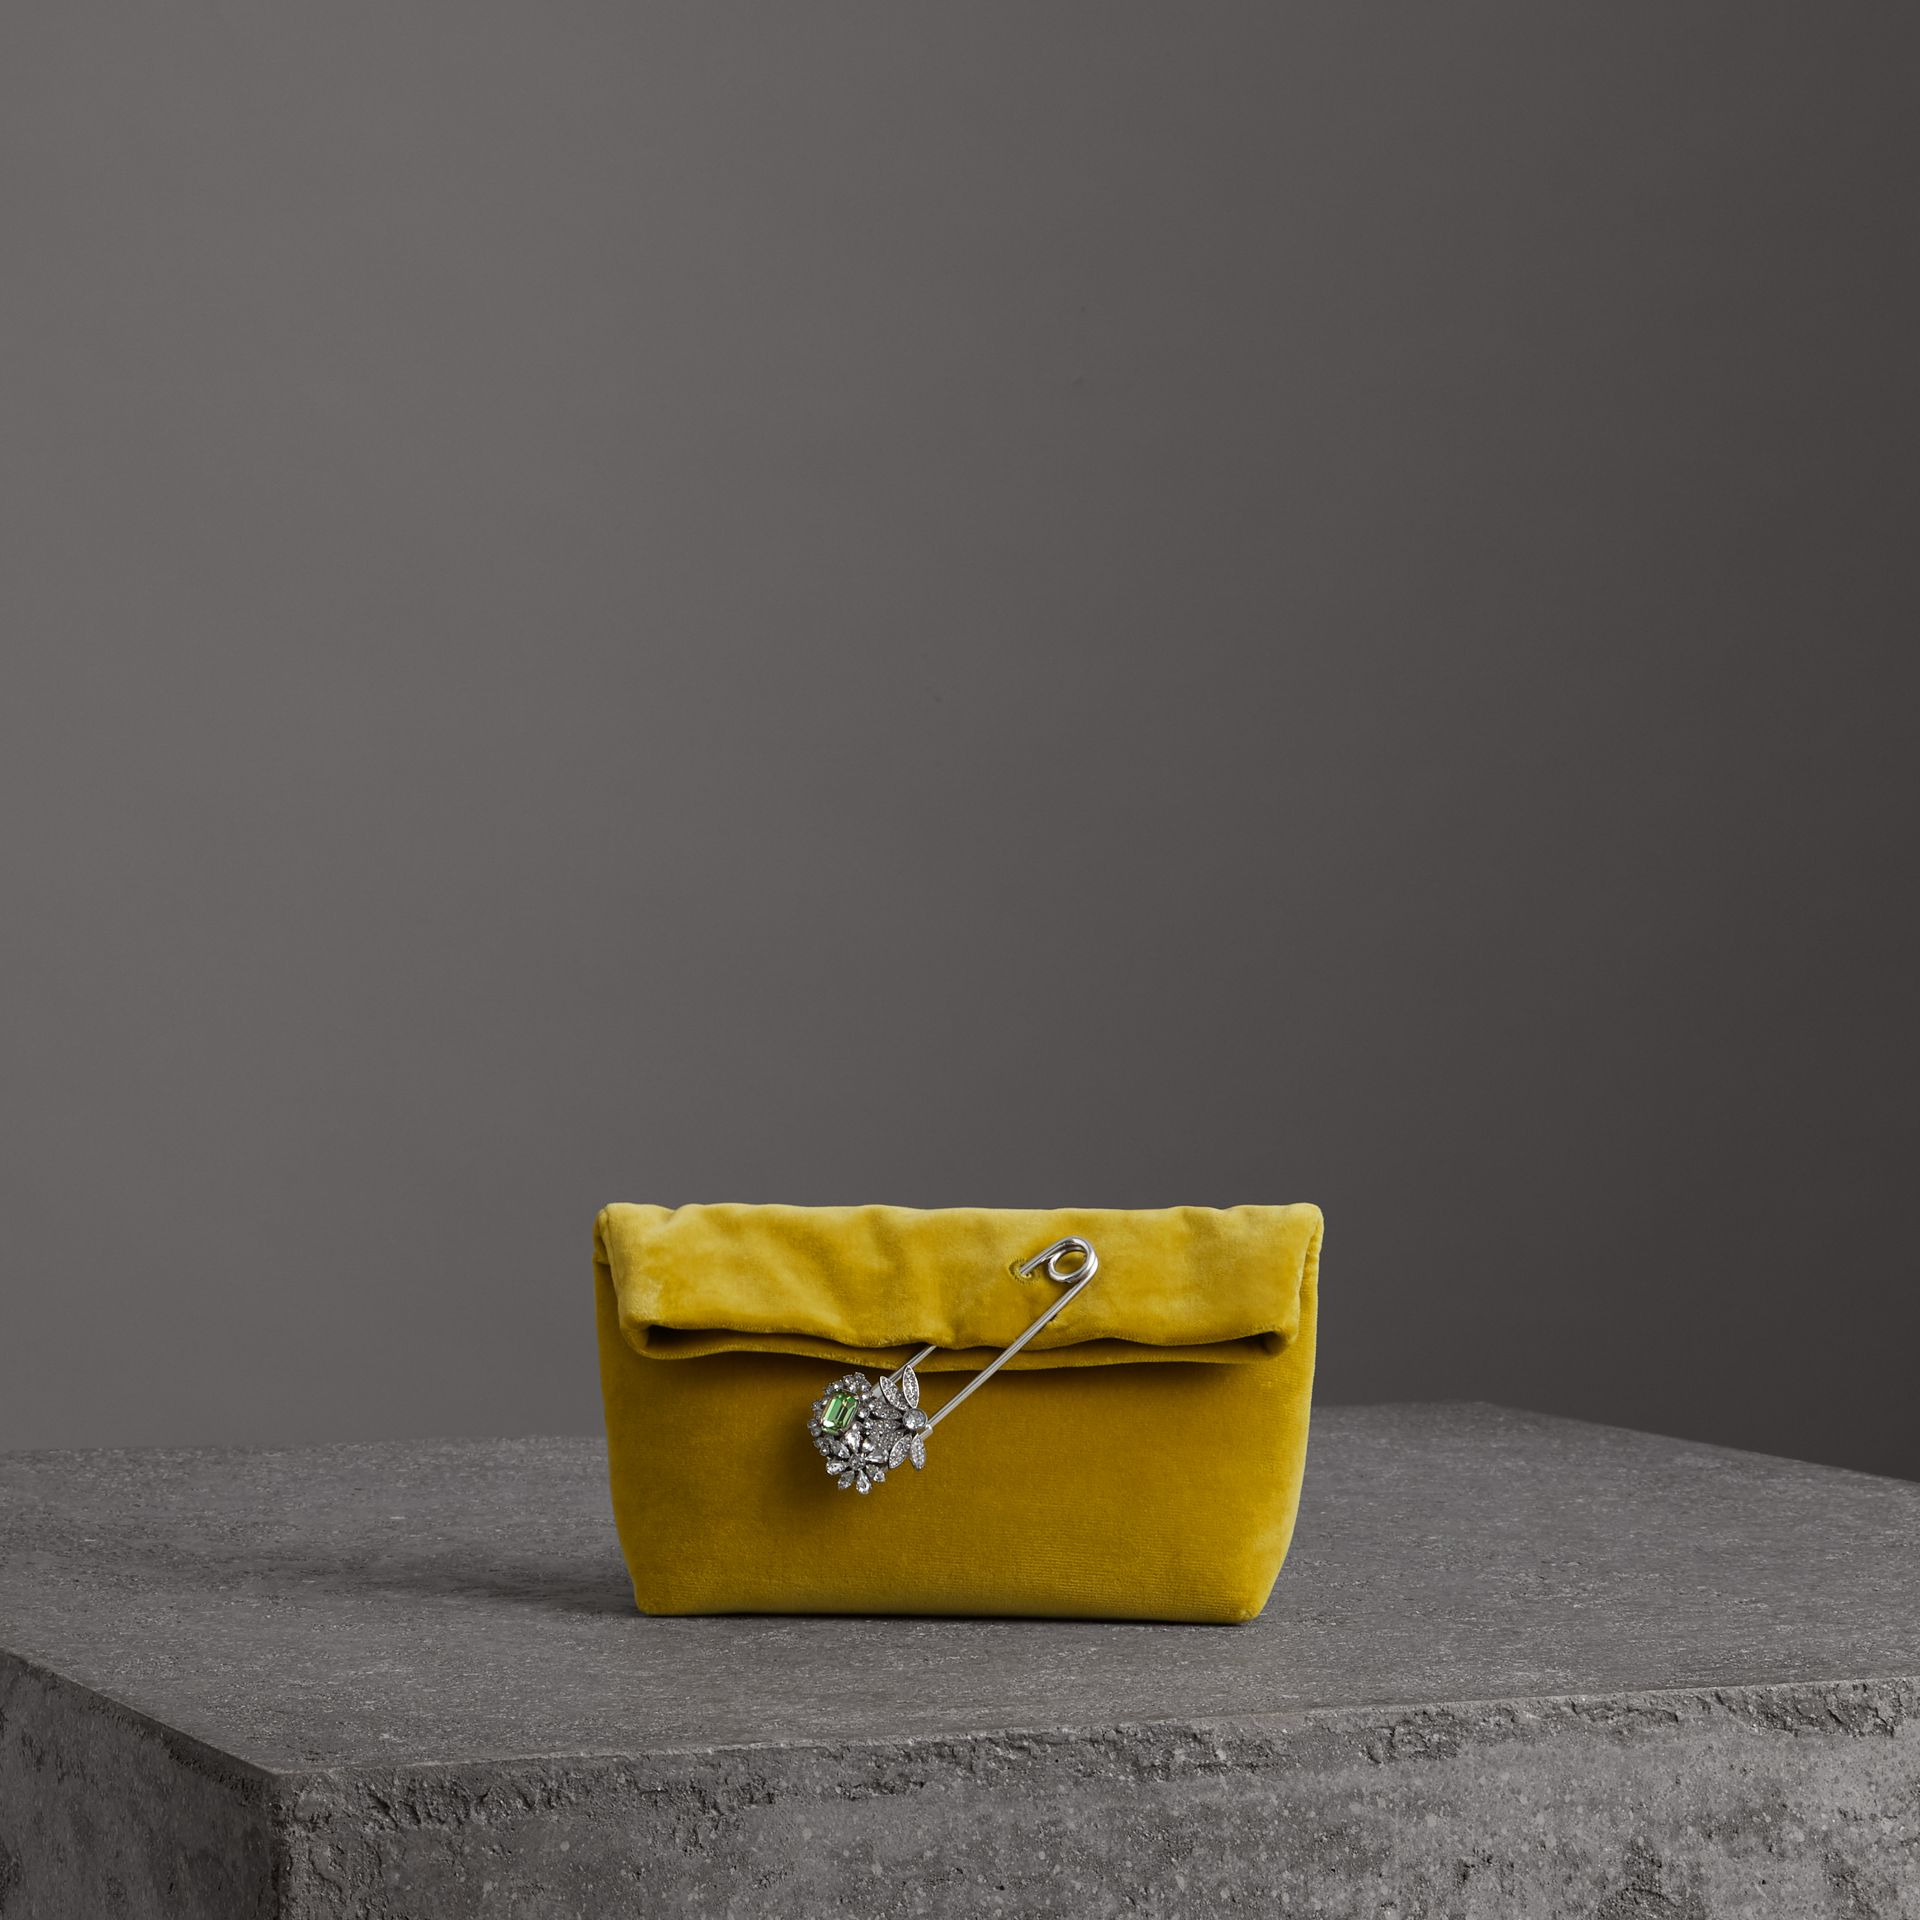 Burberry Small Velvet Embellished Pin Clutch In Larch Yellow ... 1eae5e83eda99